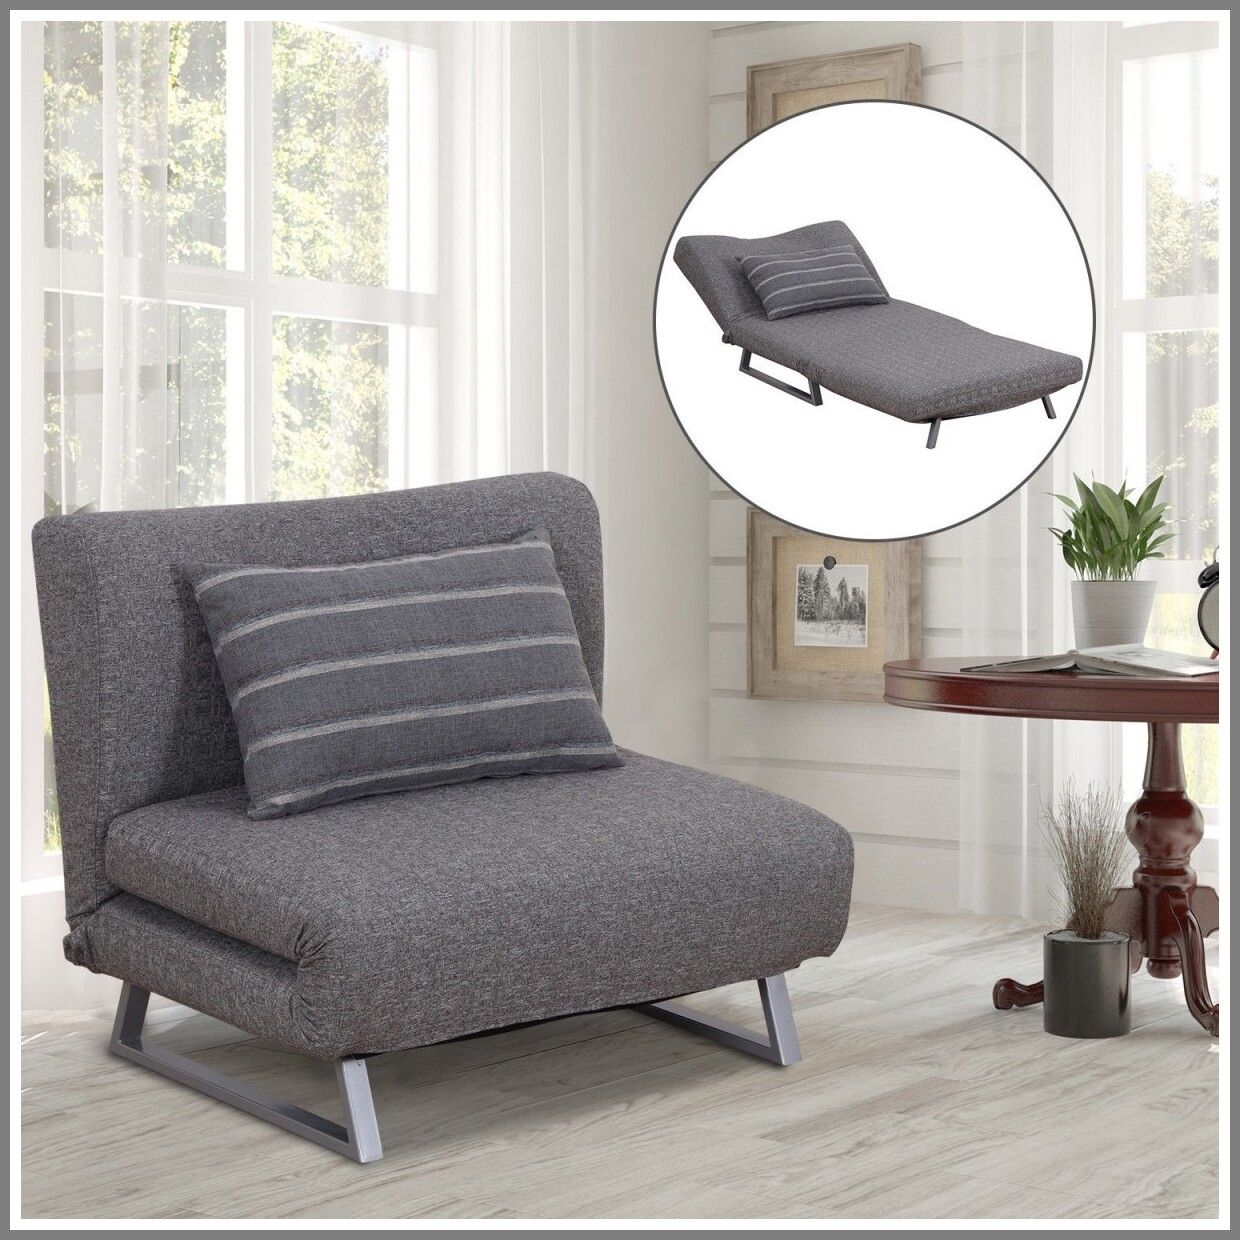 77 Reference Of Chair Sofa Bed Uk In 2020 Chair Sofa Bed Sofa Bed Uk Sofa Bed